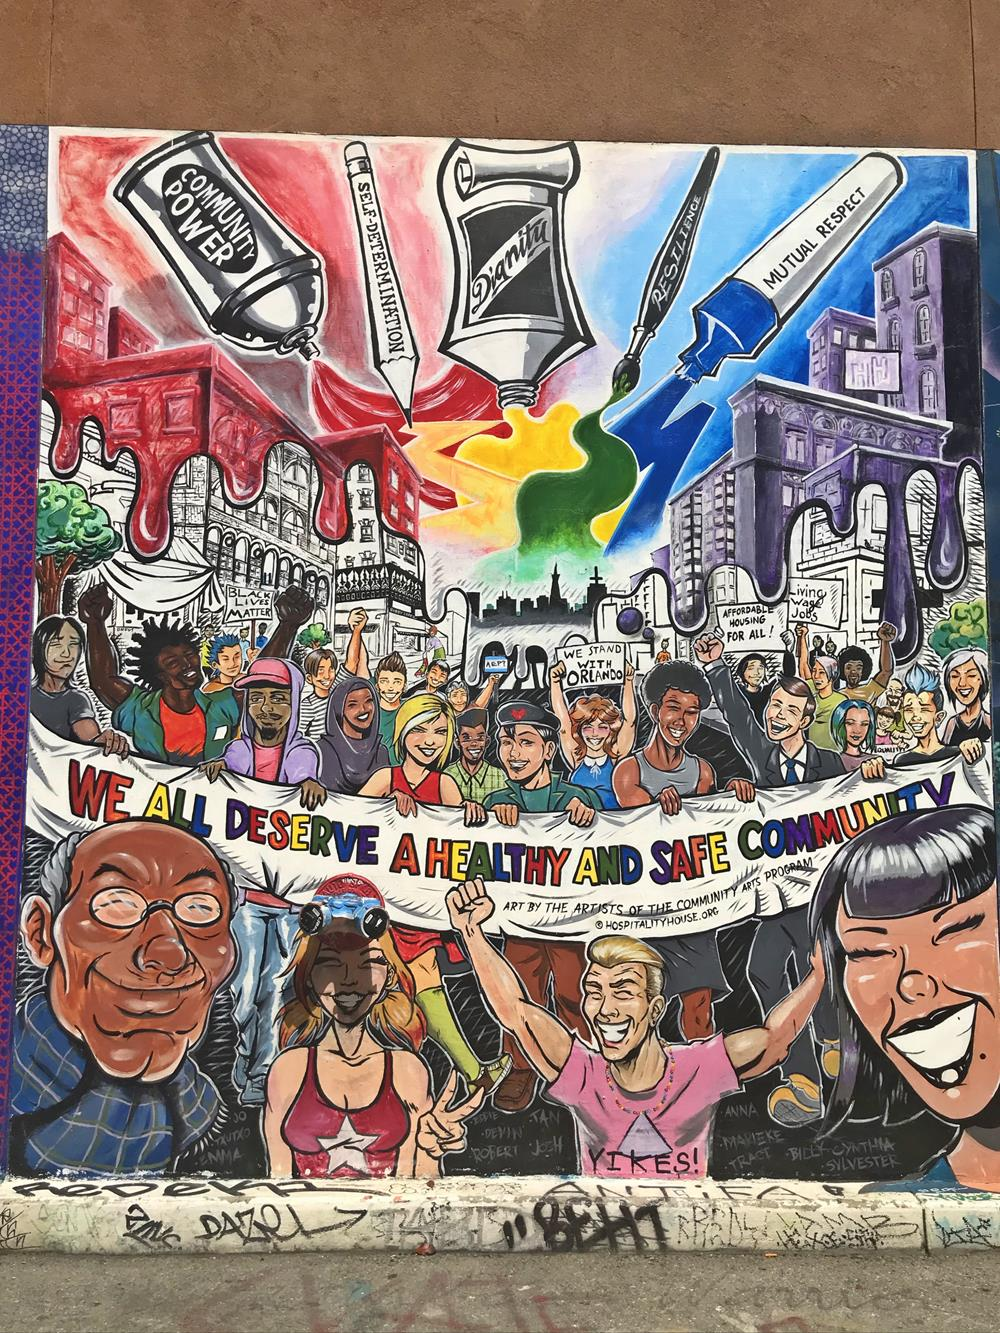 Brightly-coloured street art featuring people celebrating and a banner which says We All Deserve A Healthy And Safe Community